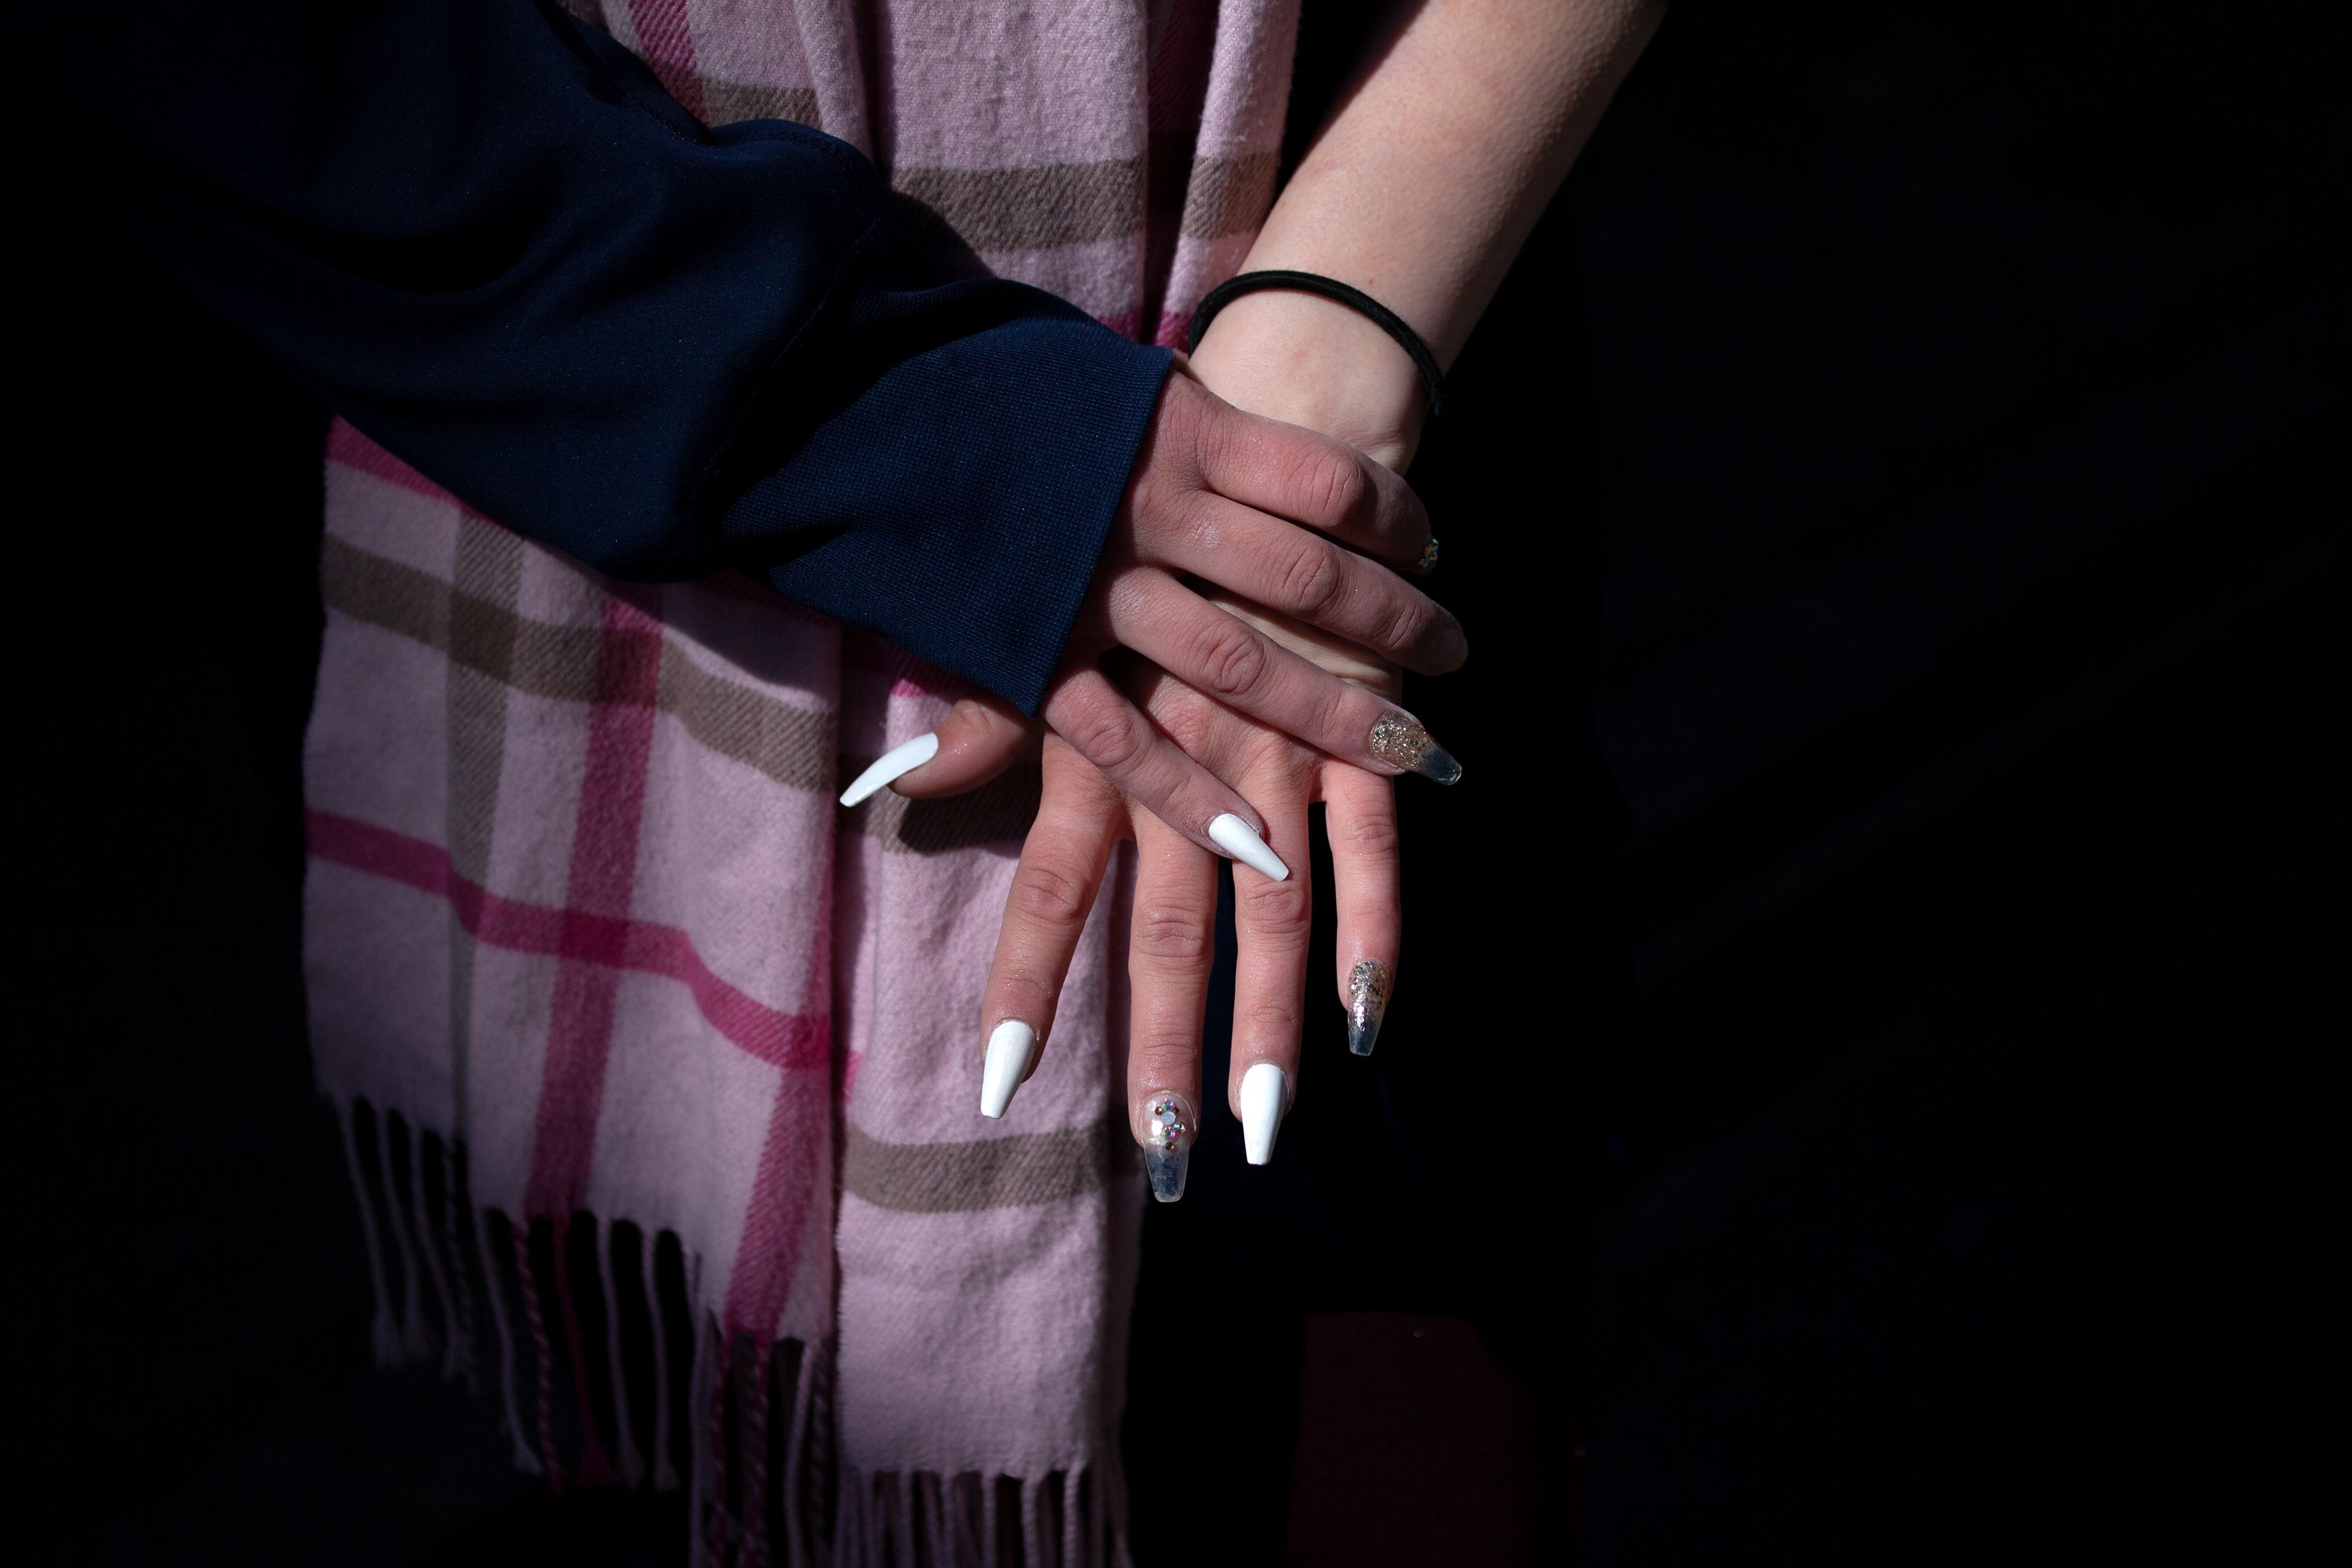 Ashley has become adept at doing her own manicures while battling homelessness.